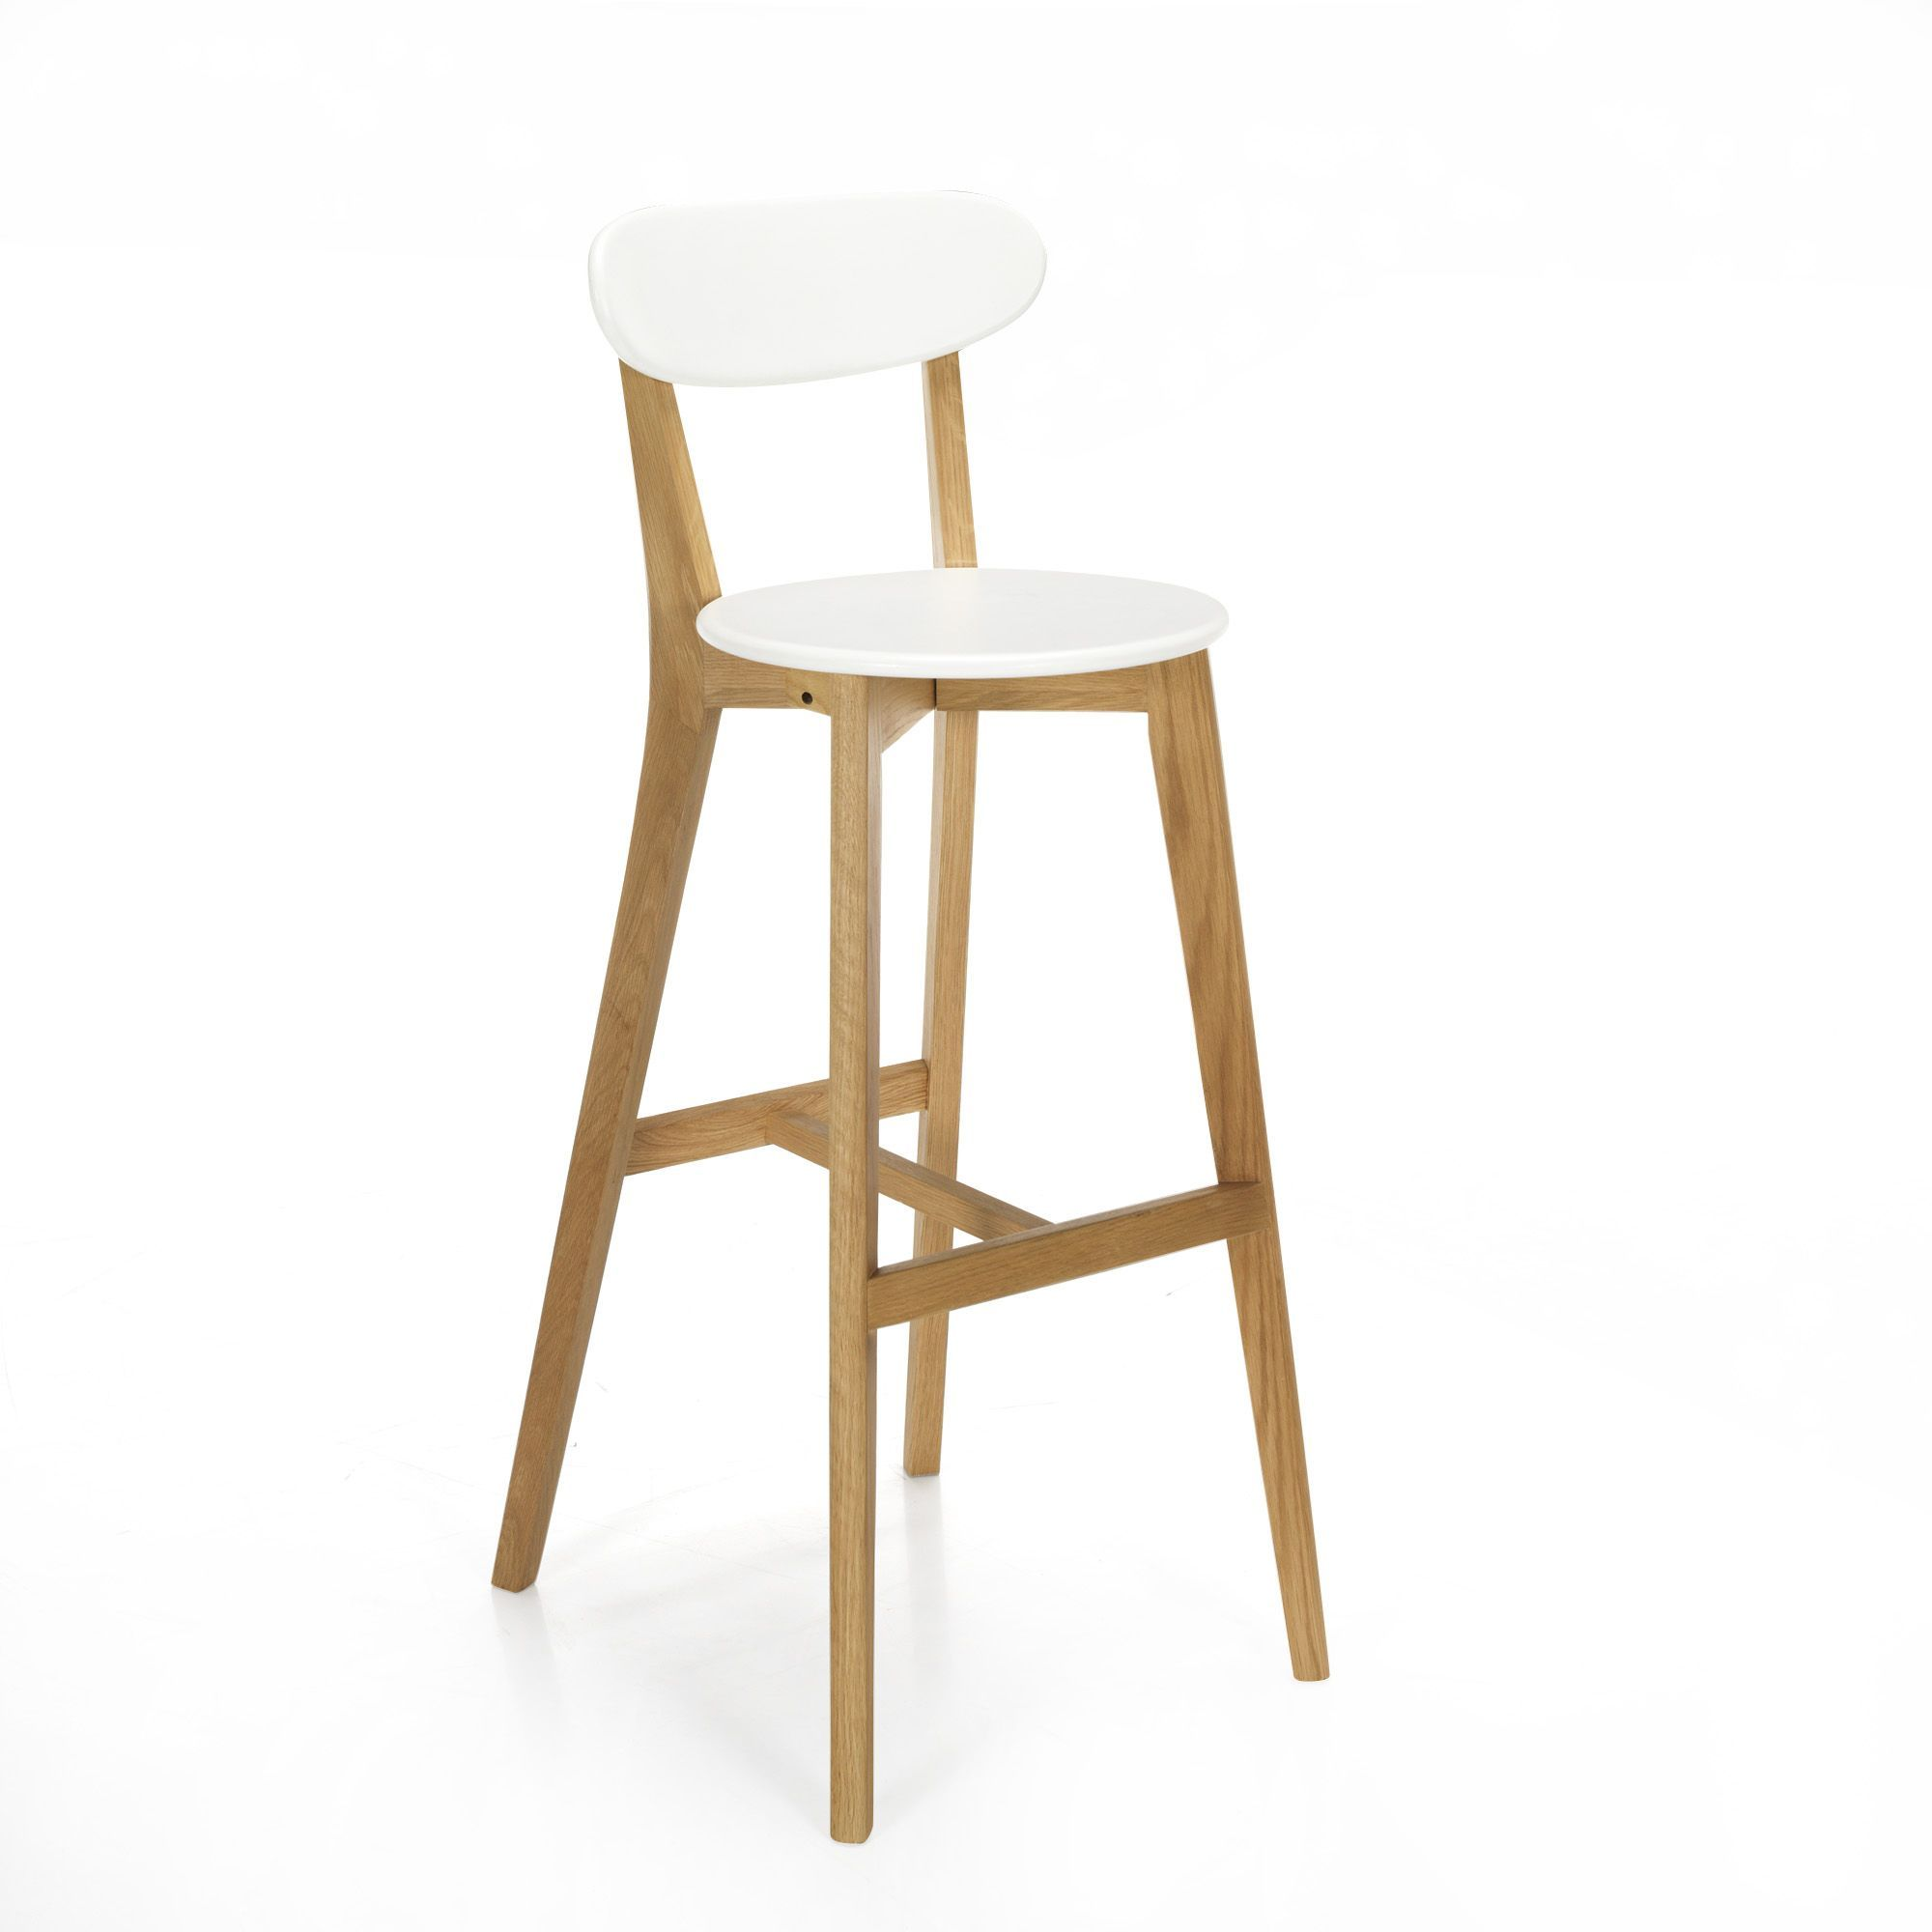 Mateo bain bar design and tables - Table et chaise ikea ...